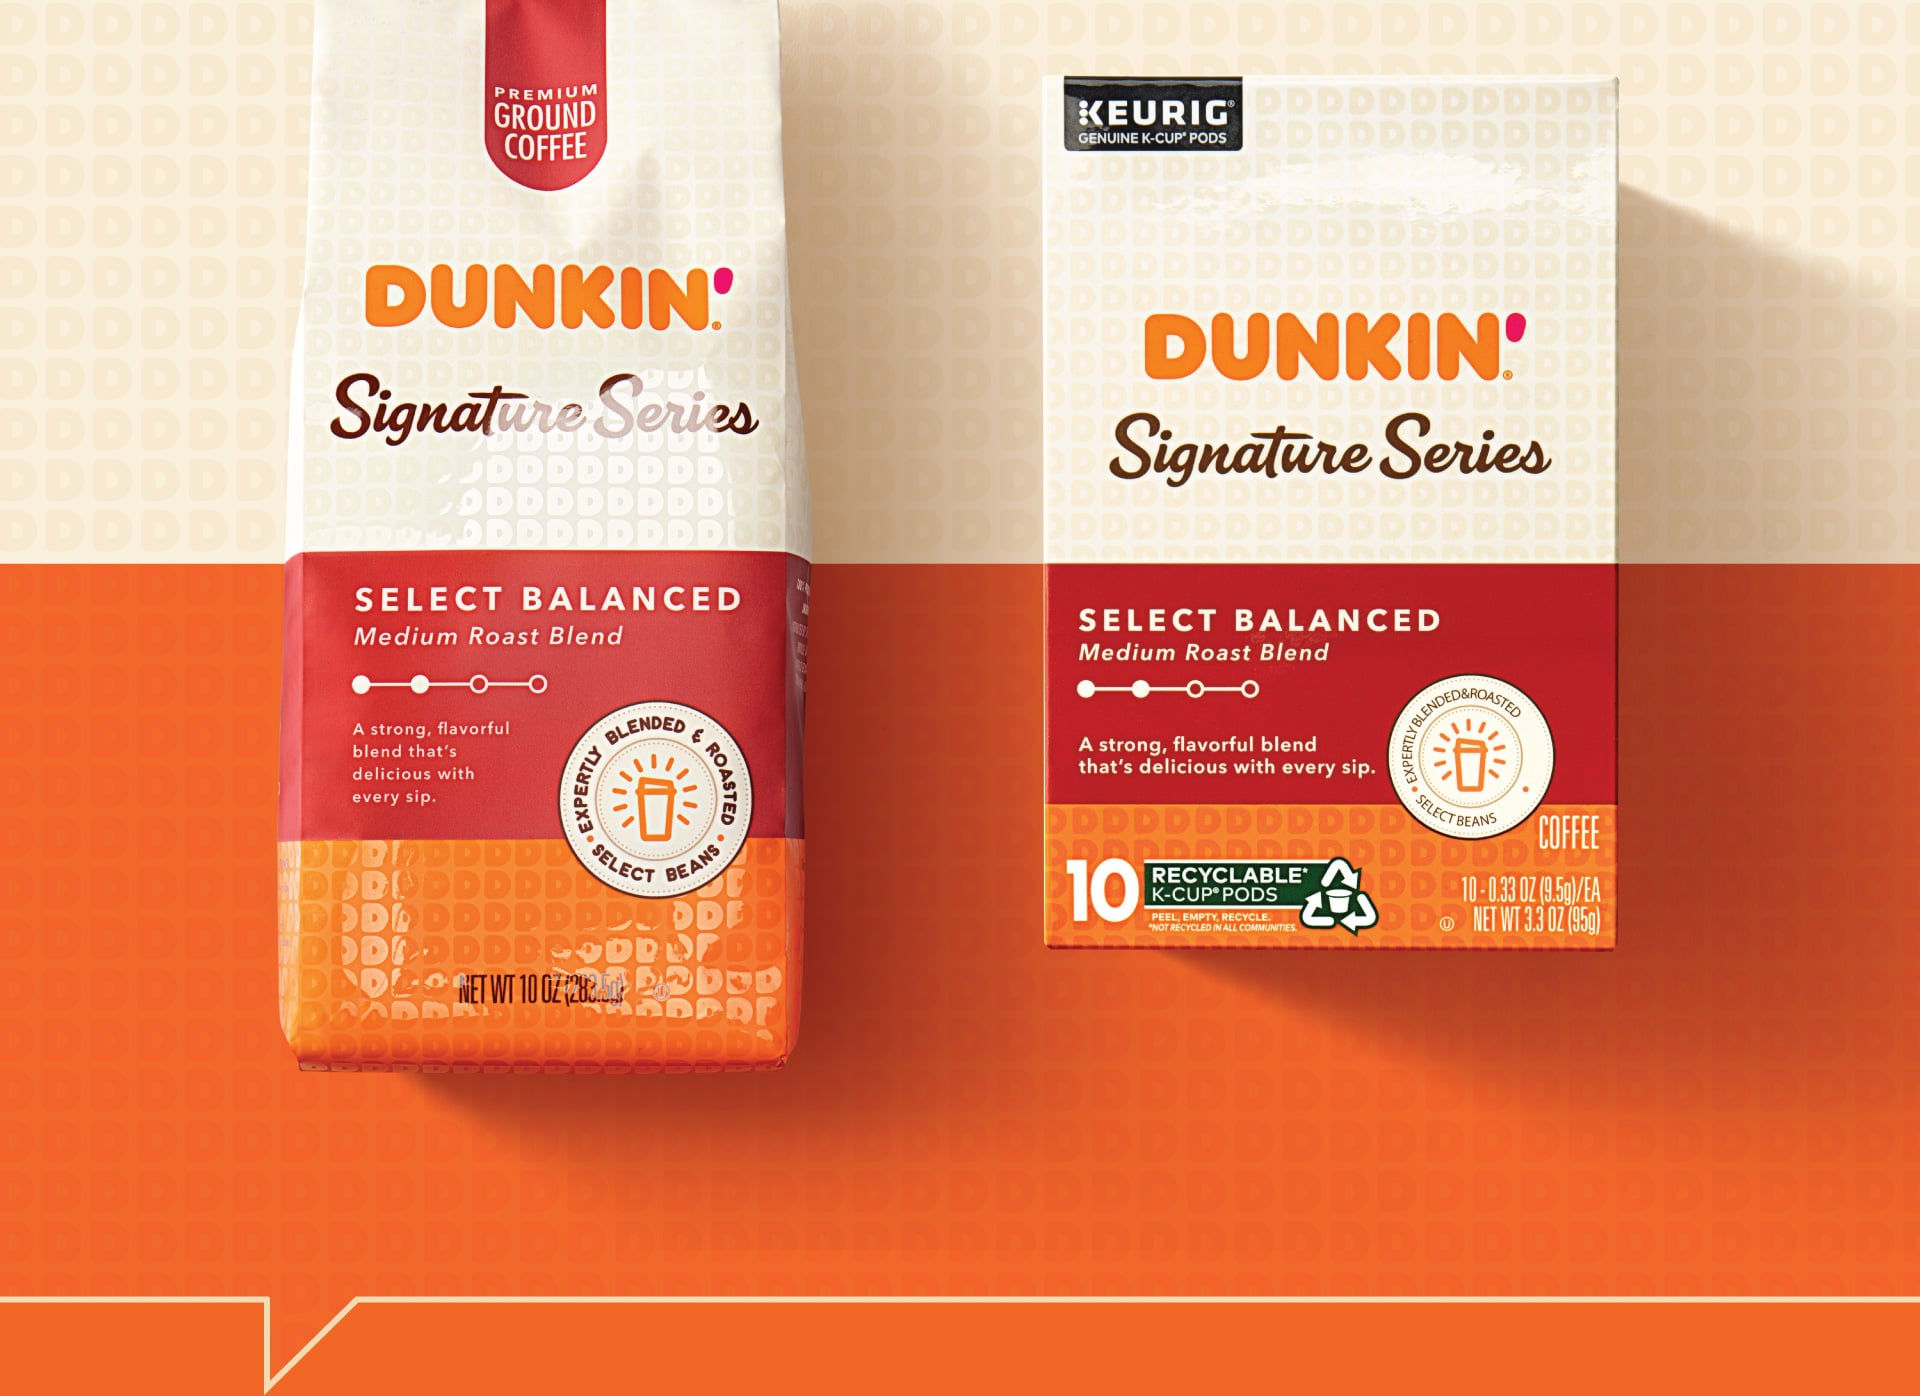 Dunkin Signature Series - Packaging Design